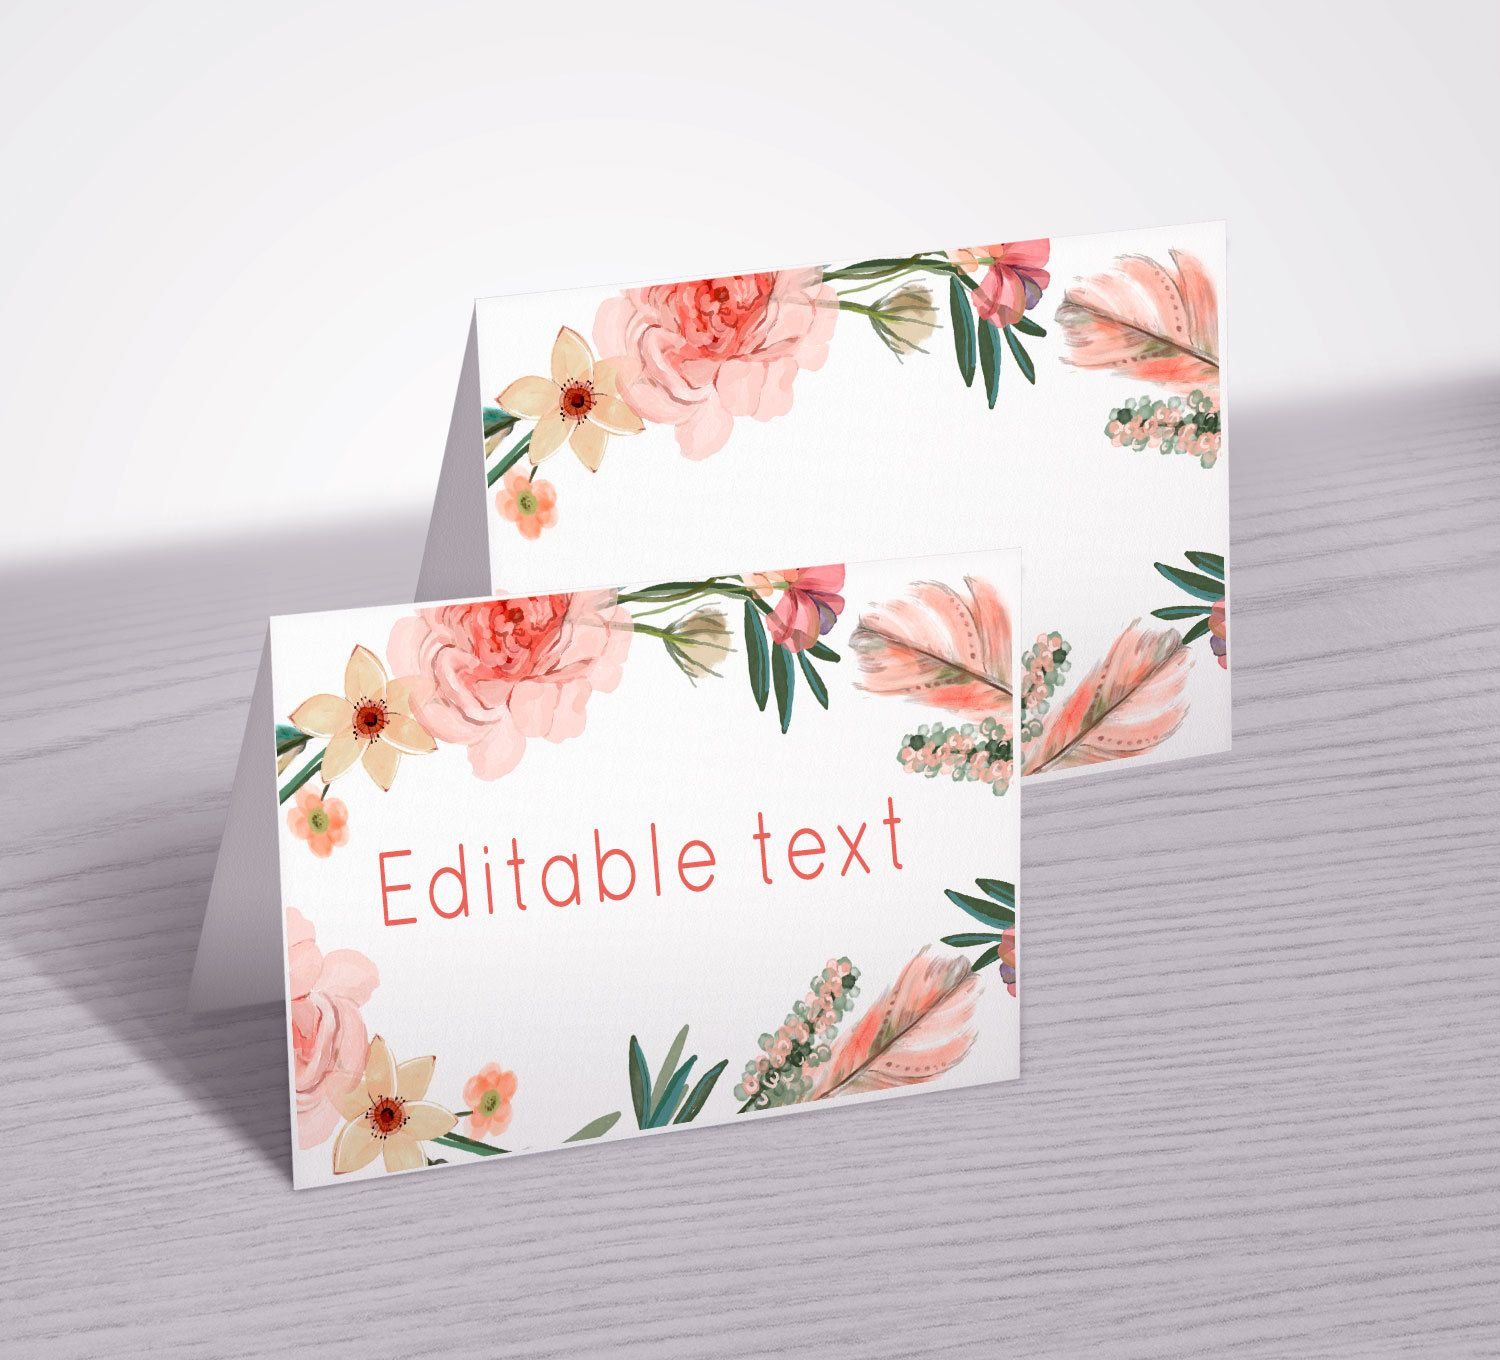 Printable Food Tent Cards Fl Labels Folded Buffet Editable And Blank Table Tents Peachbaby12 De Thepartybunch En Etsy